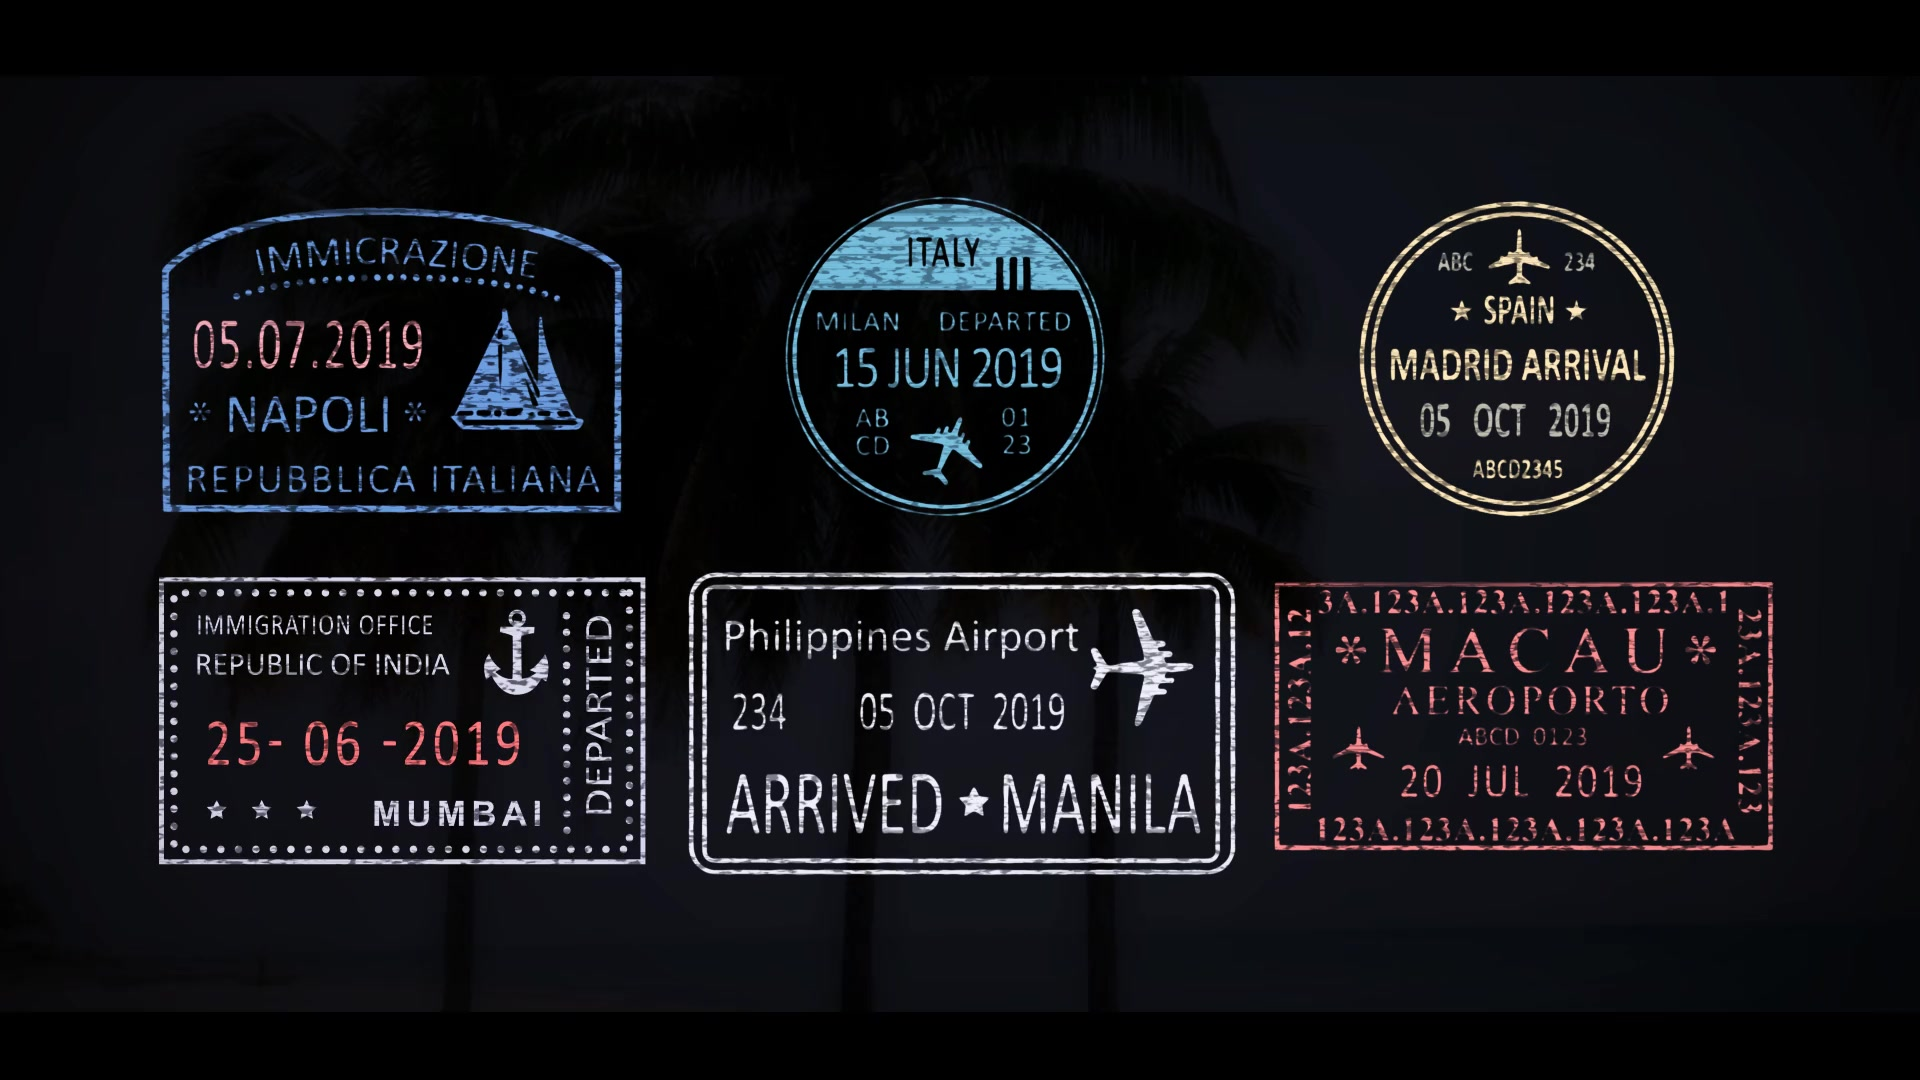 50 Travel Stamps Videohive 23673412 After Effects Image 4